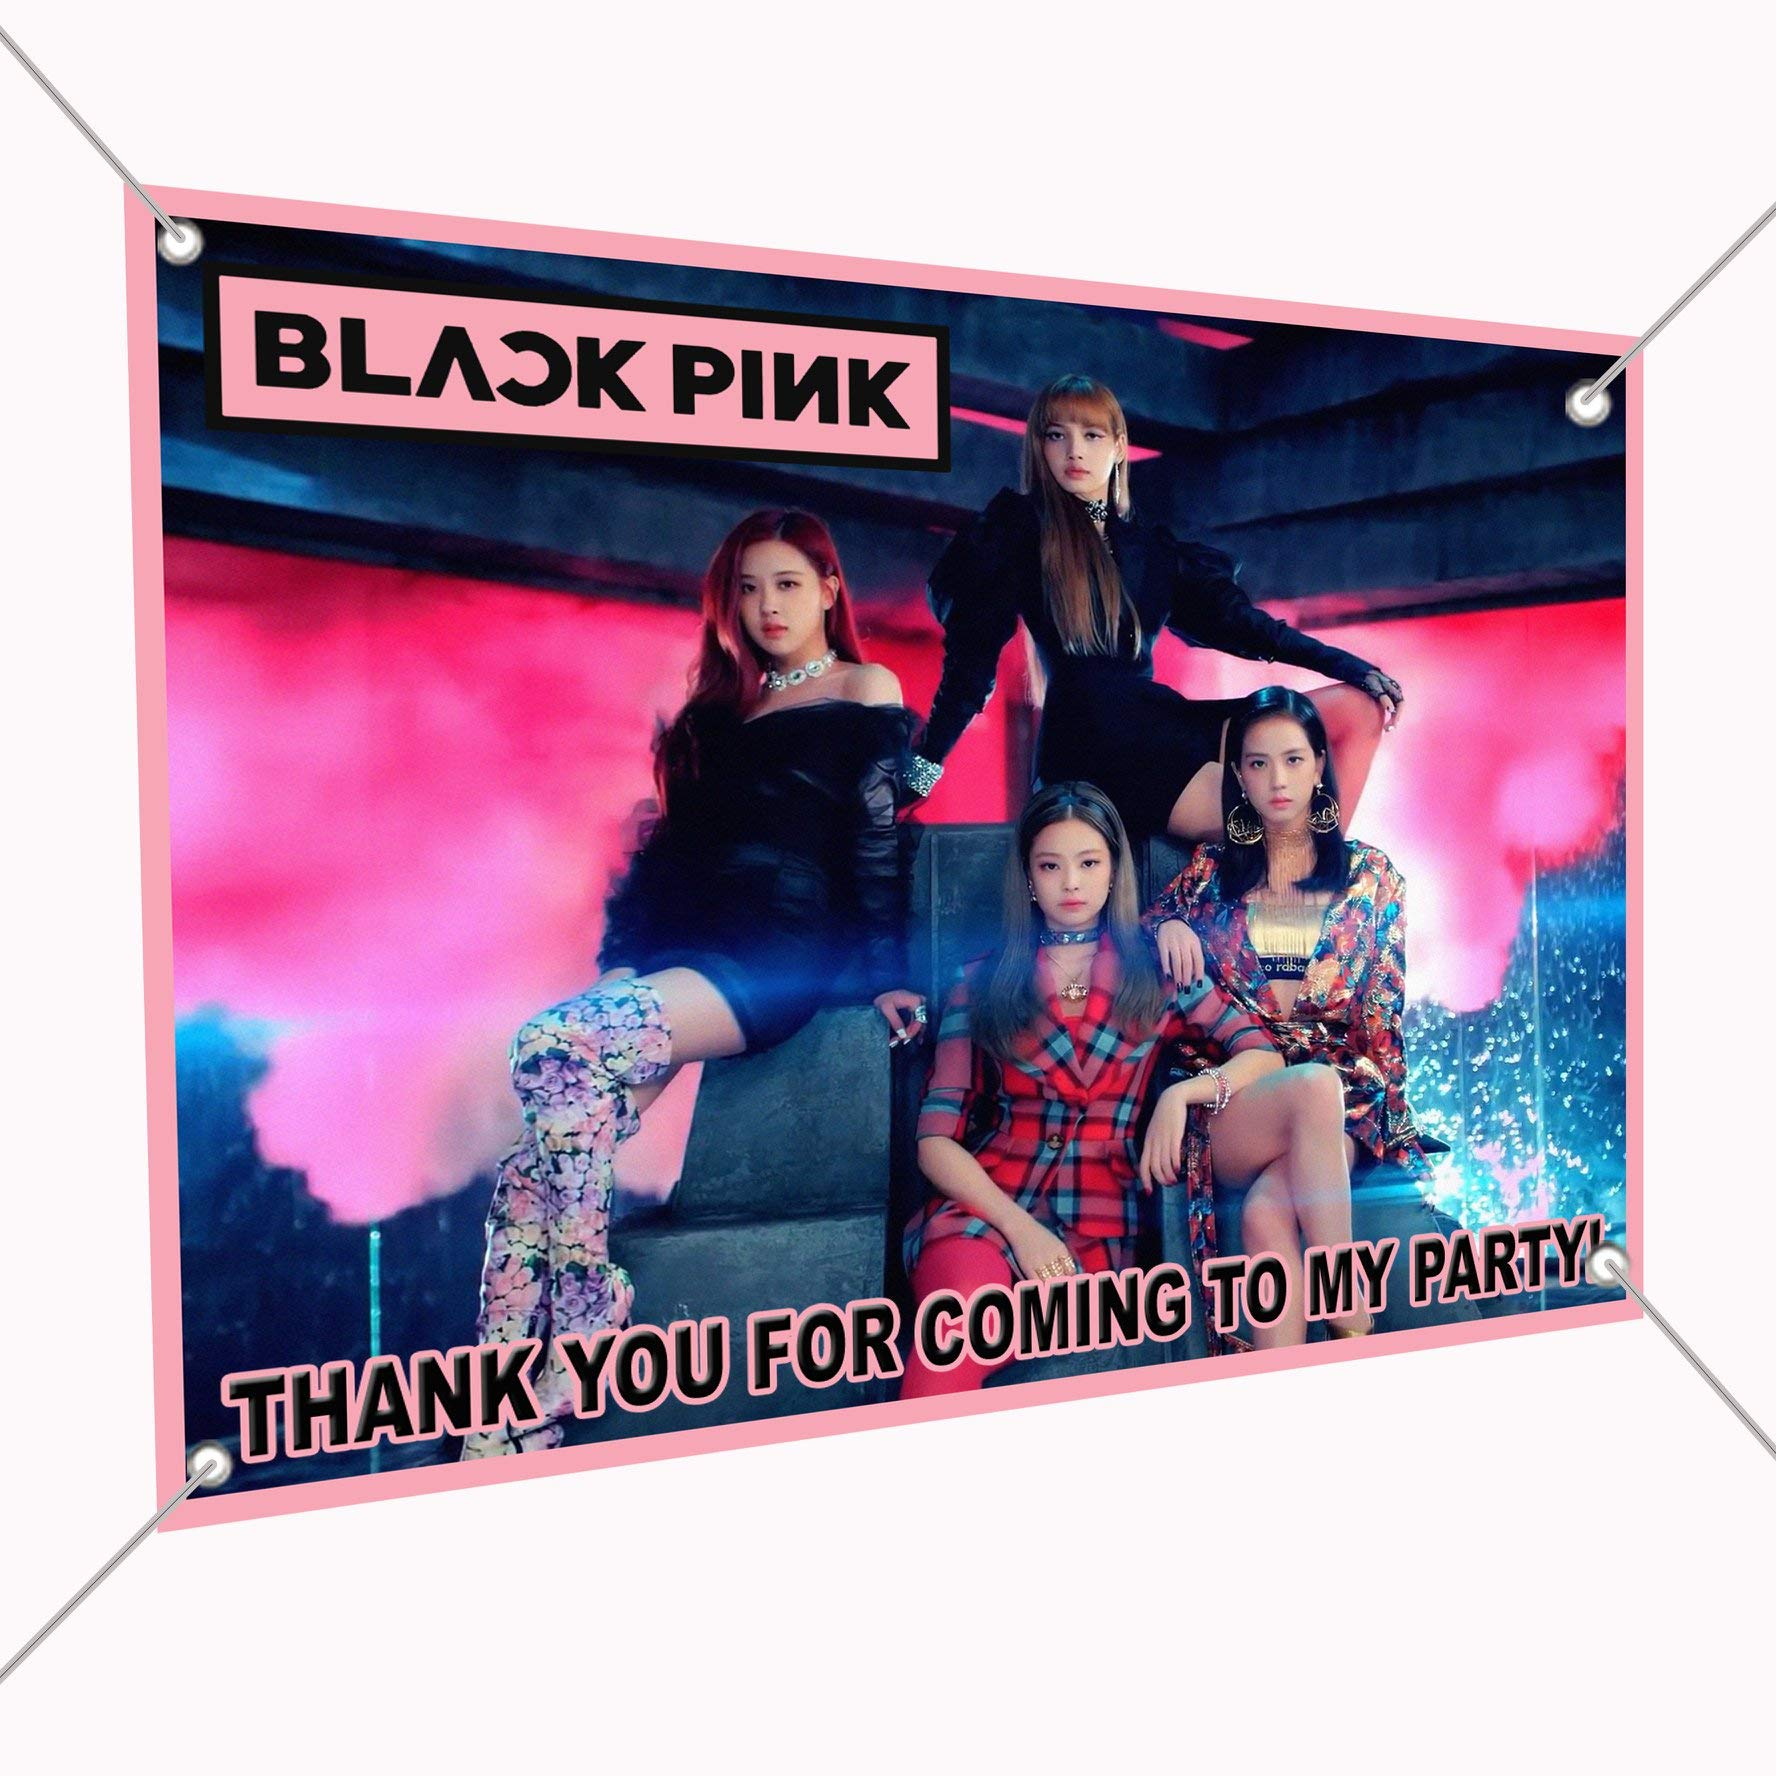 Black Pink Banner Bangtan Girl K-Pop Large Vinyl Indoor or Outdoor Banner Sign Poster Backdrop, Party Favor Decoration, 30'' x 24'', 2.5' x 2', South Korean Girl Band Jisoo Jennie Rosé Lisa